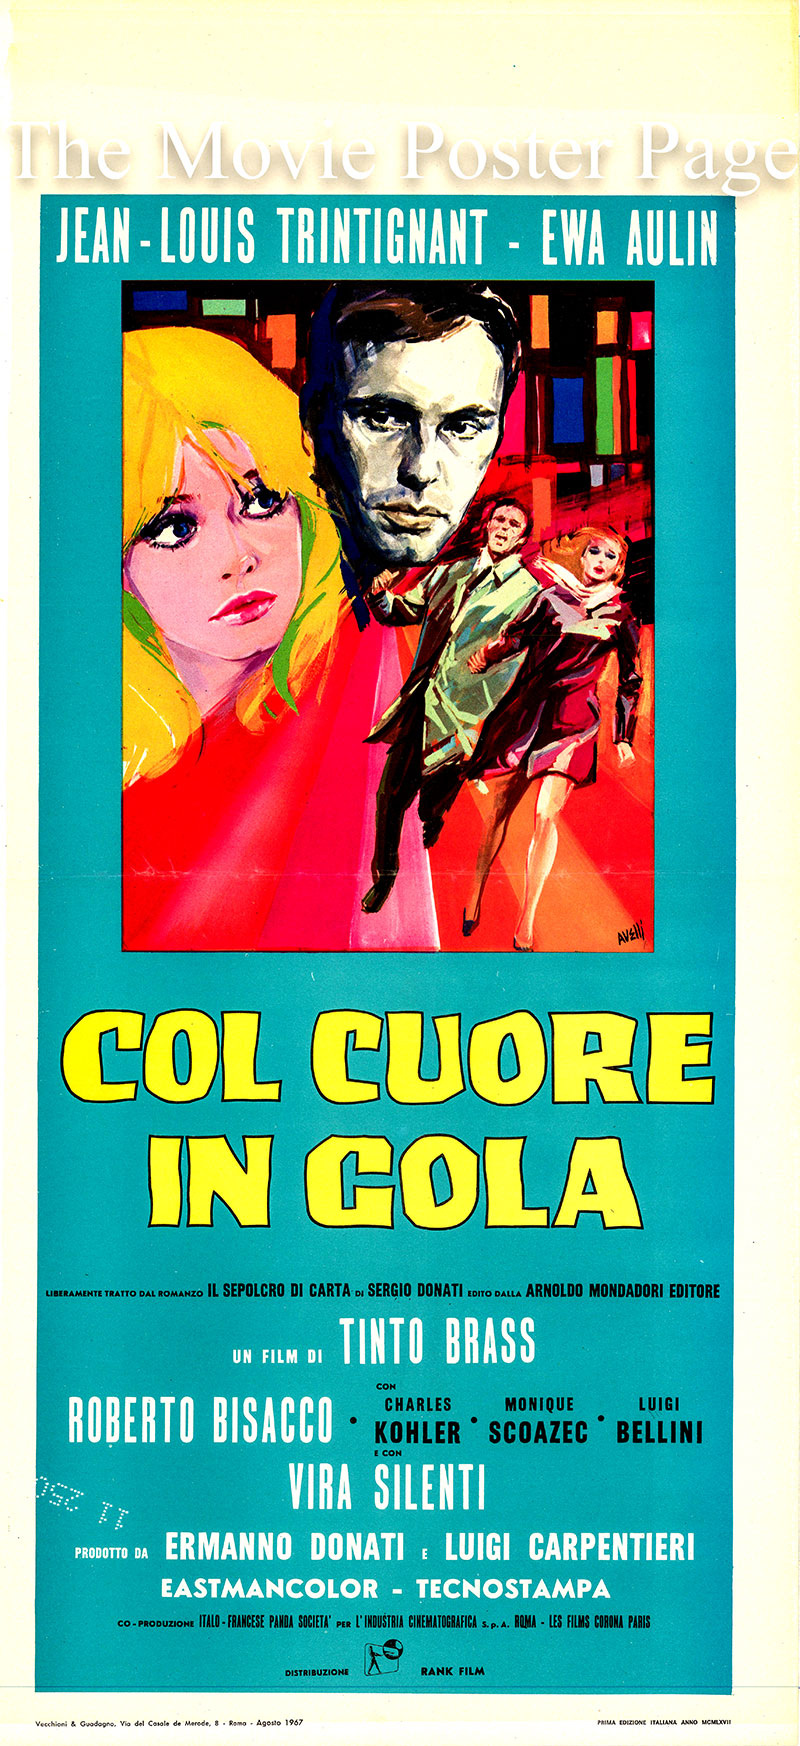 Pictured is an Italian locandina promotional poster for the 1967 Tinto Brass film Dead Stop starring Jean-Louis Trintignant.